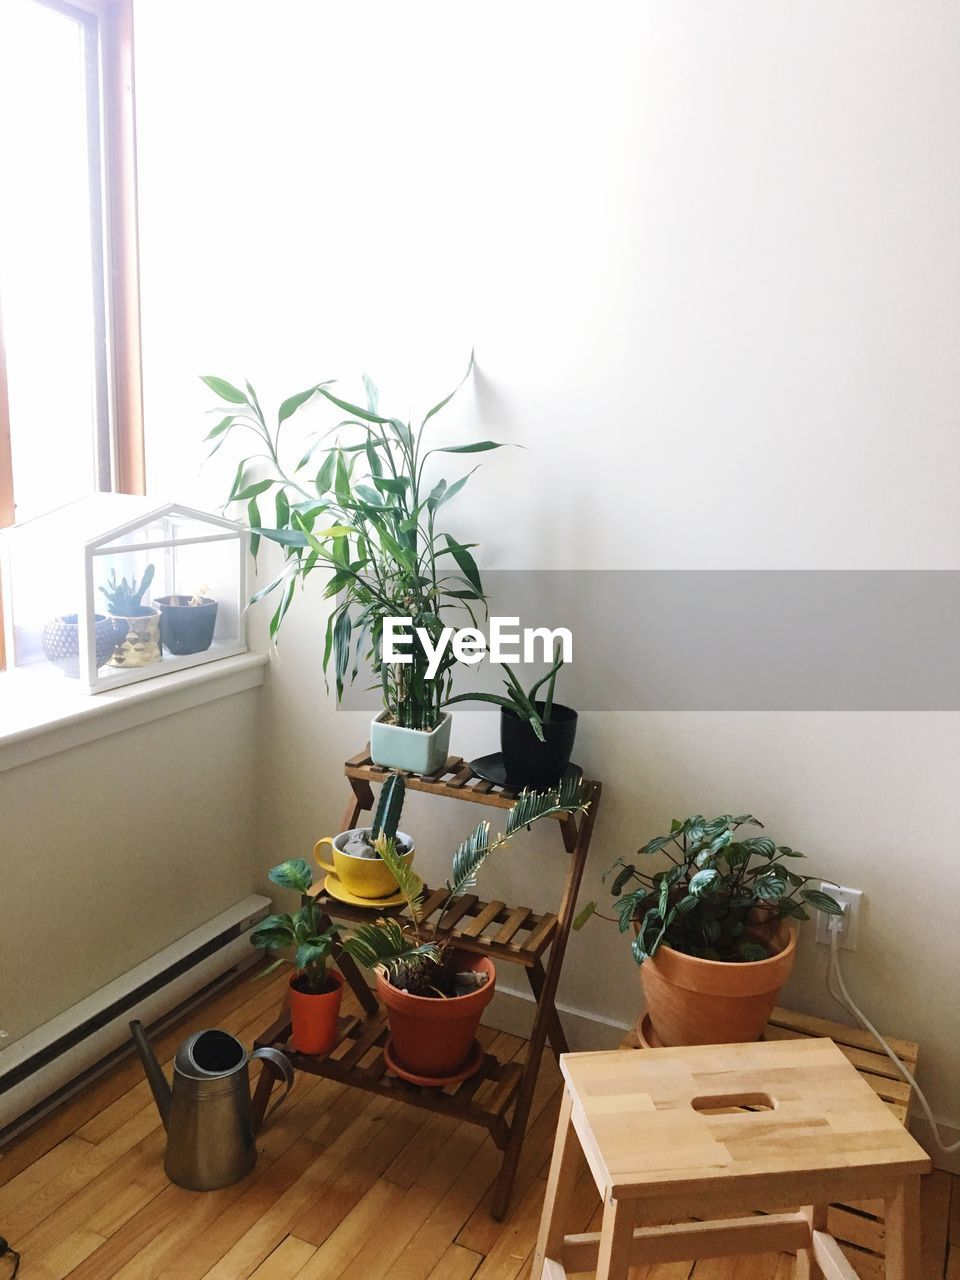 potted plant, indoors, plant, no people, home interior, table, window, growth, houseplant, nature, day, wood - material, seat, home, domestic room, absence, wall - building feature, chair, container, flower pot